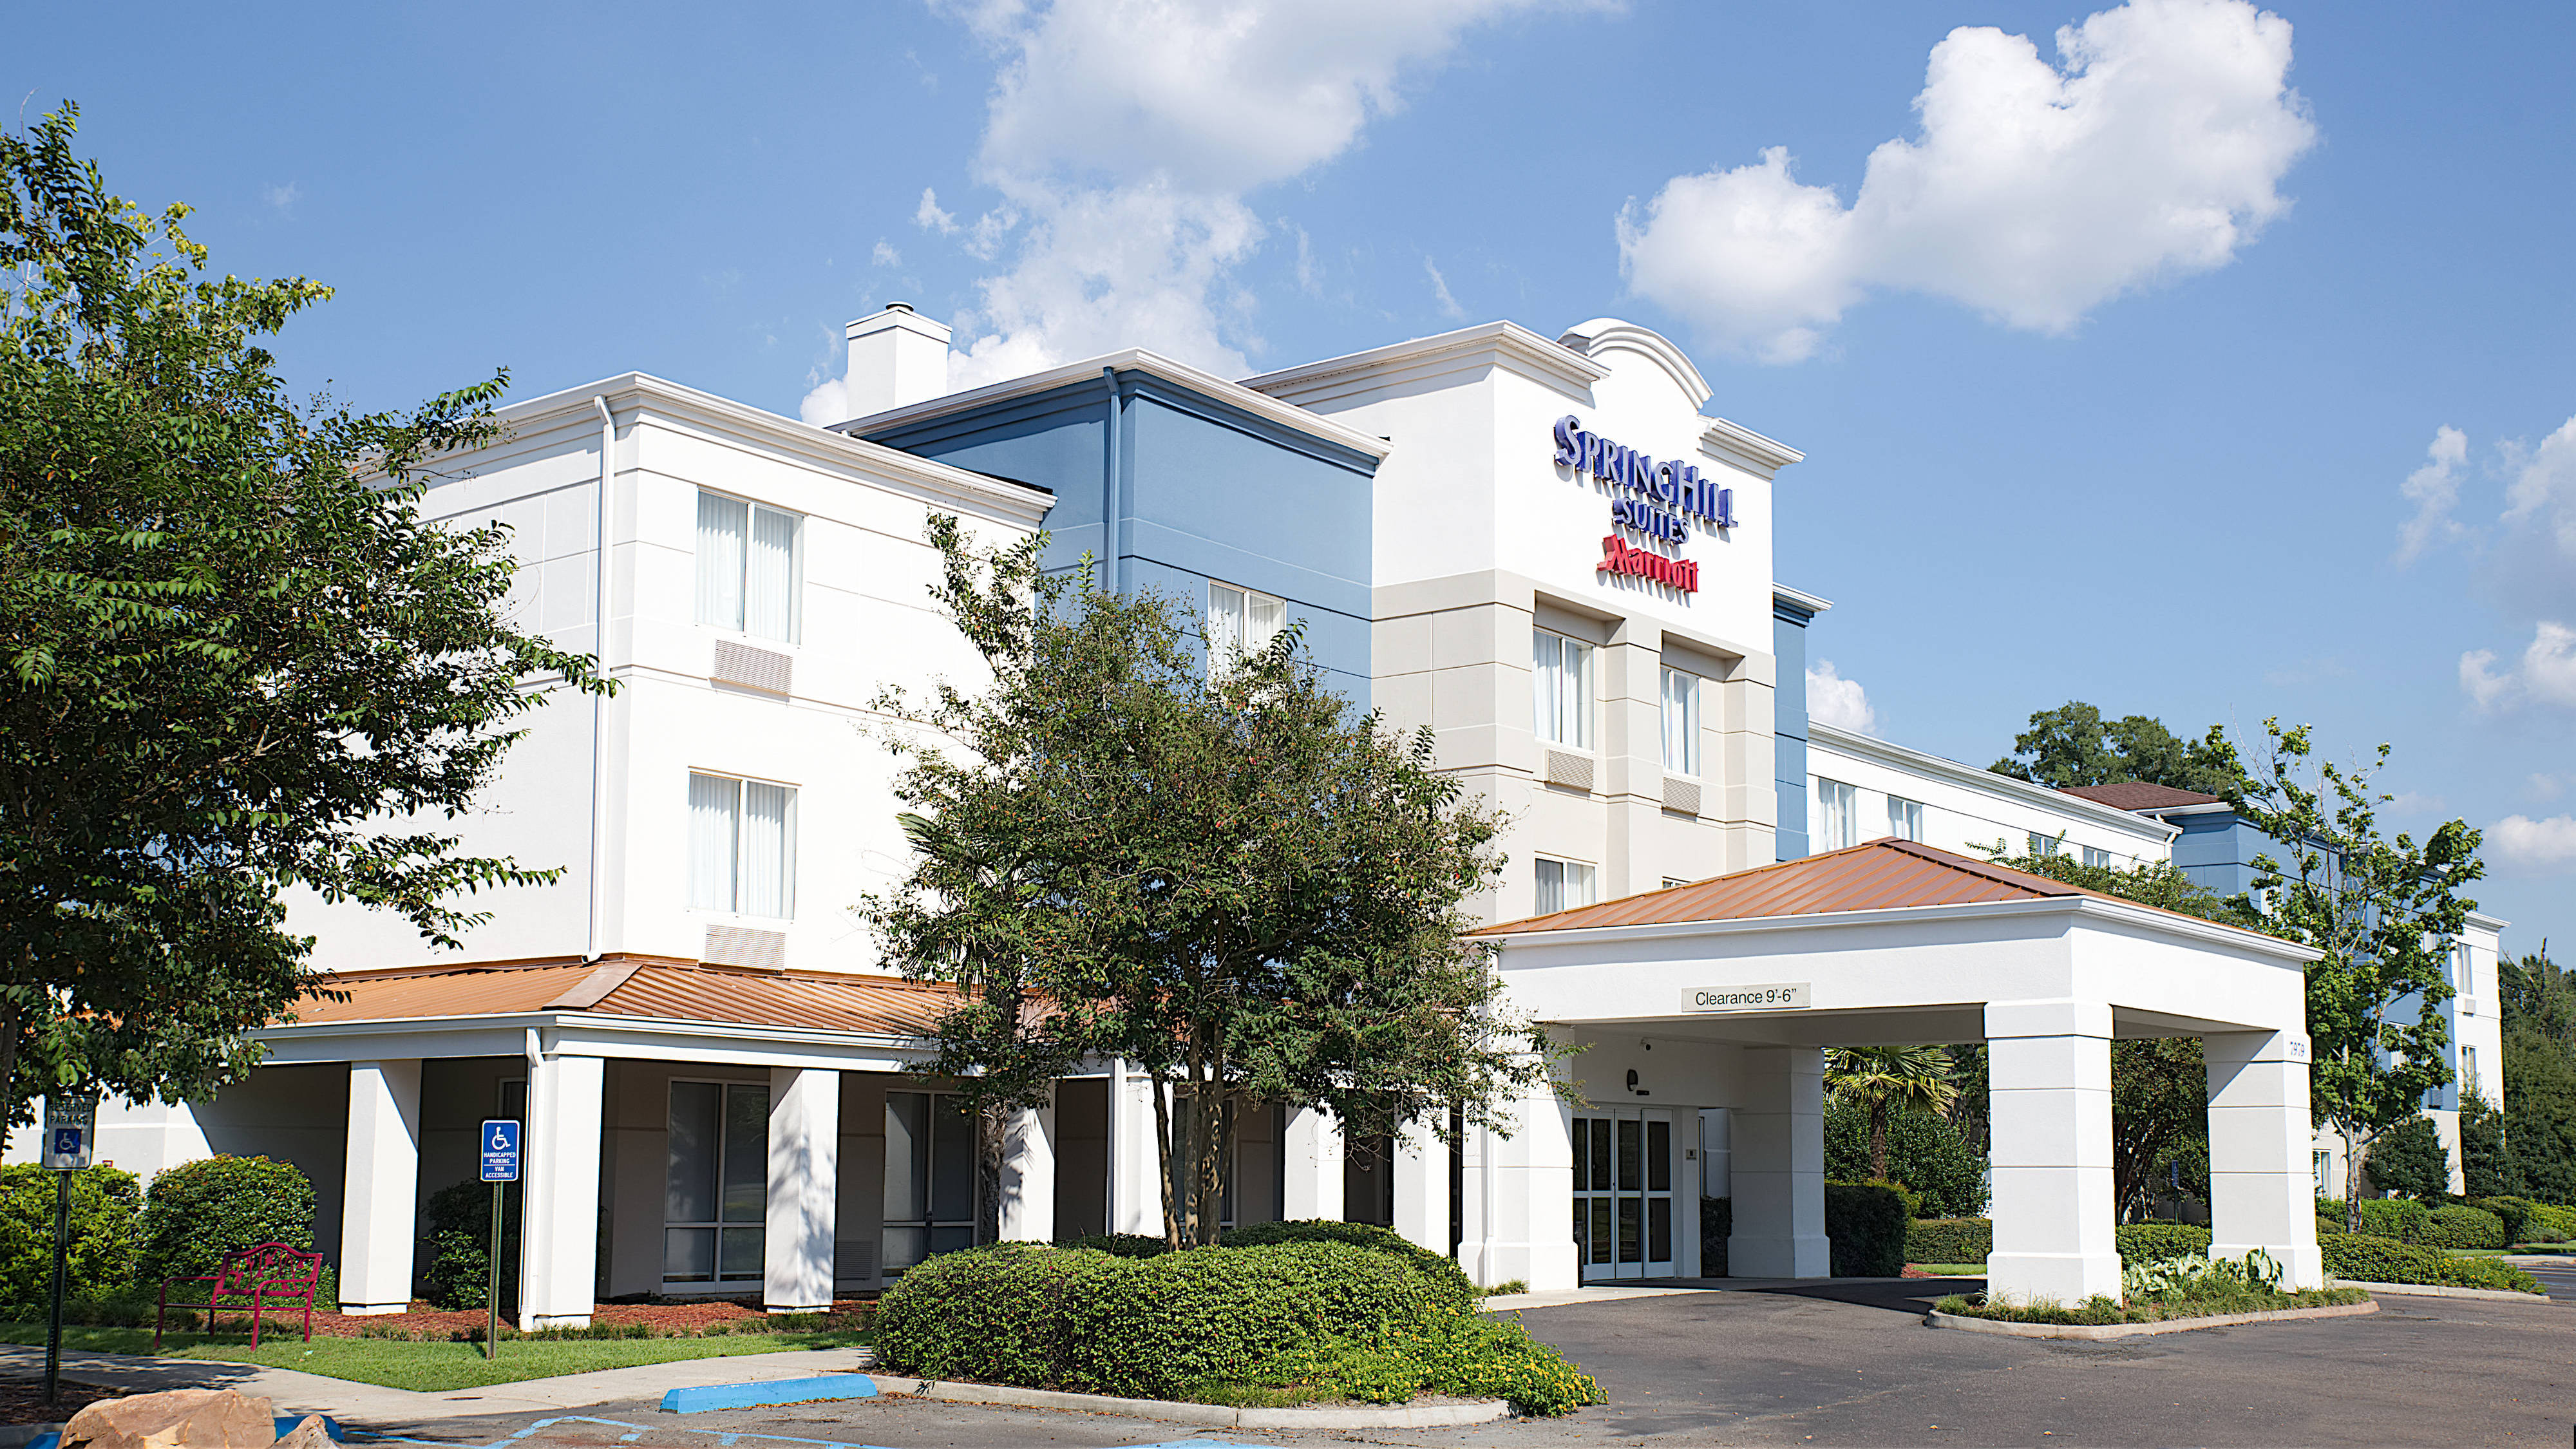 SpringHill Suites by Marriott Baton Rouge South image 4